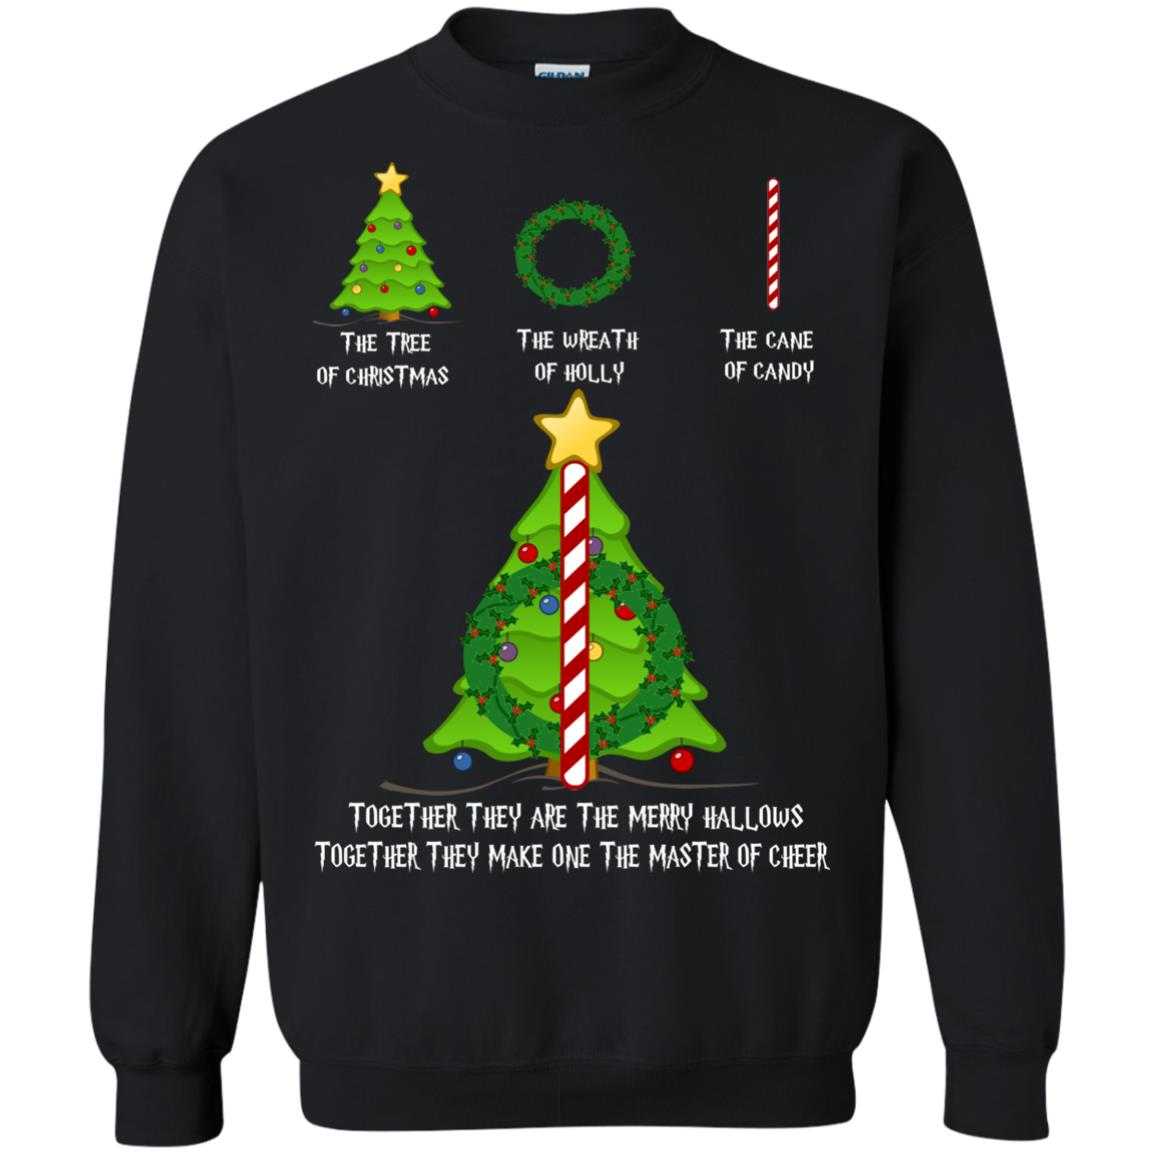 image 367px Harry Potter: The Tree Of Christmas The Wreath of Holly The Cane Of Candy Sweater